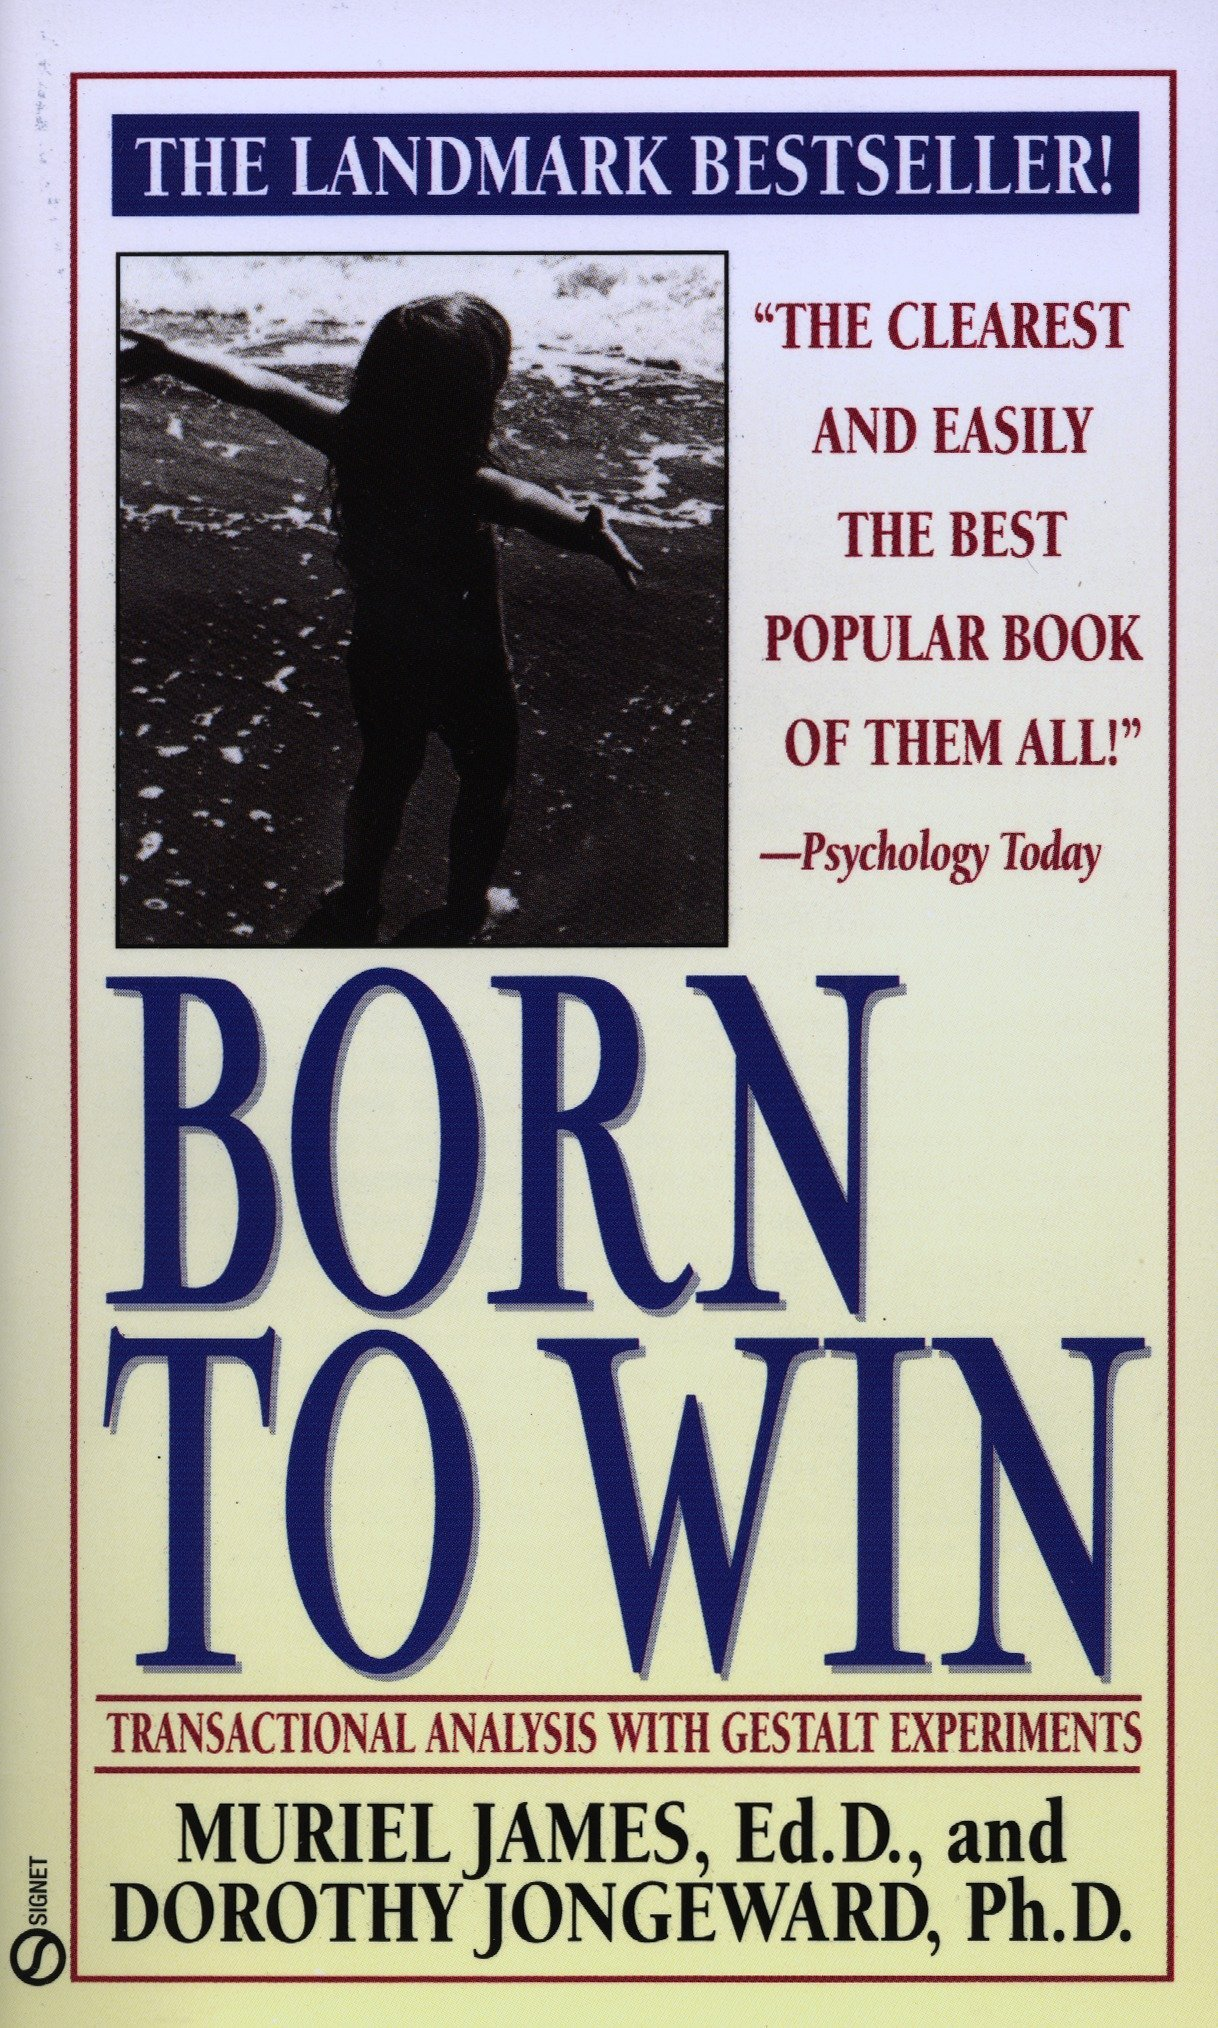 Born to Win: Transactional Analysis with Gestalt Experiments: Muriel James,  Dorothy Jongeward: 9780451165213: Amazon.com: Books